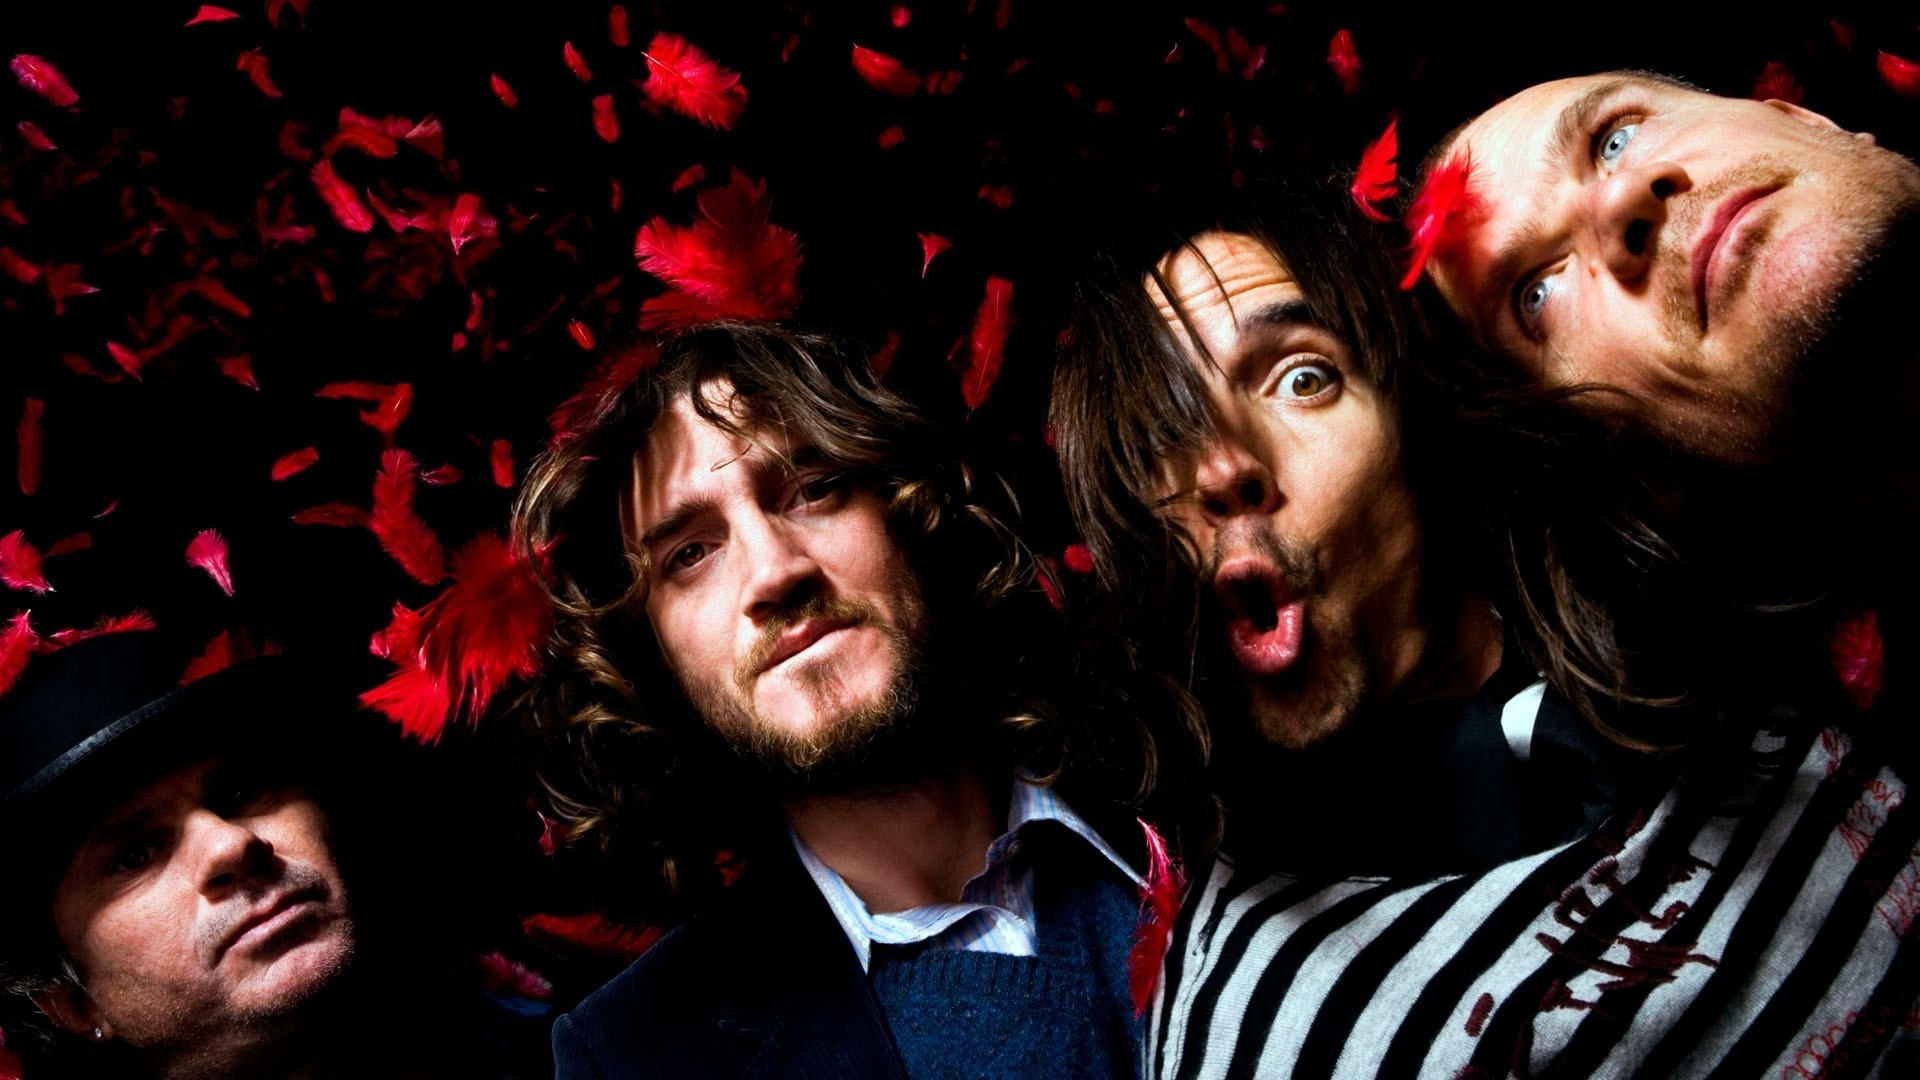 Red Hot Chili Peppers Wallpapers HD / Desktop and Mobile Backgrounds